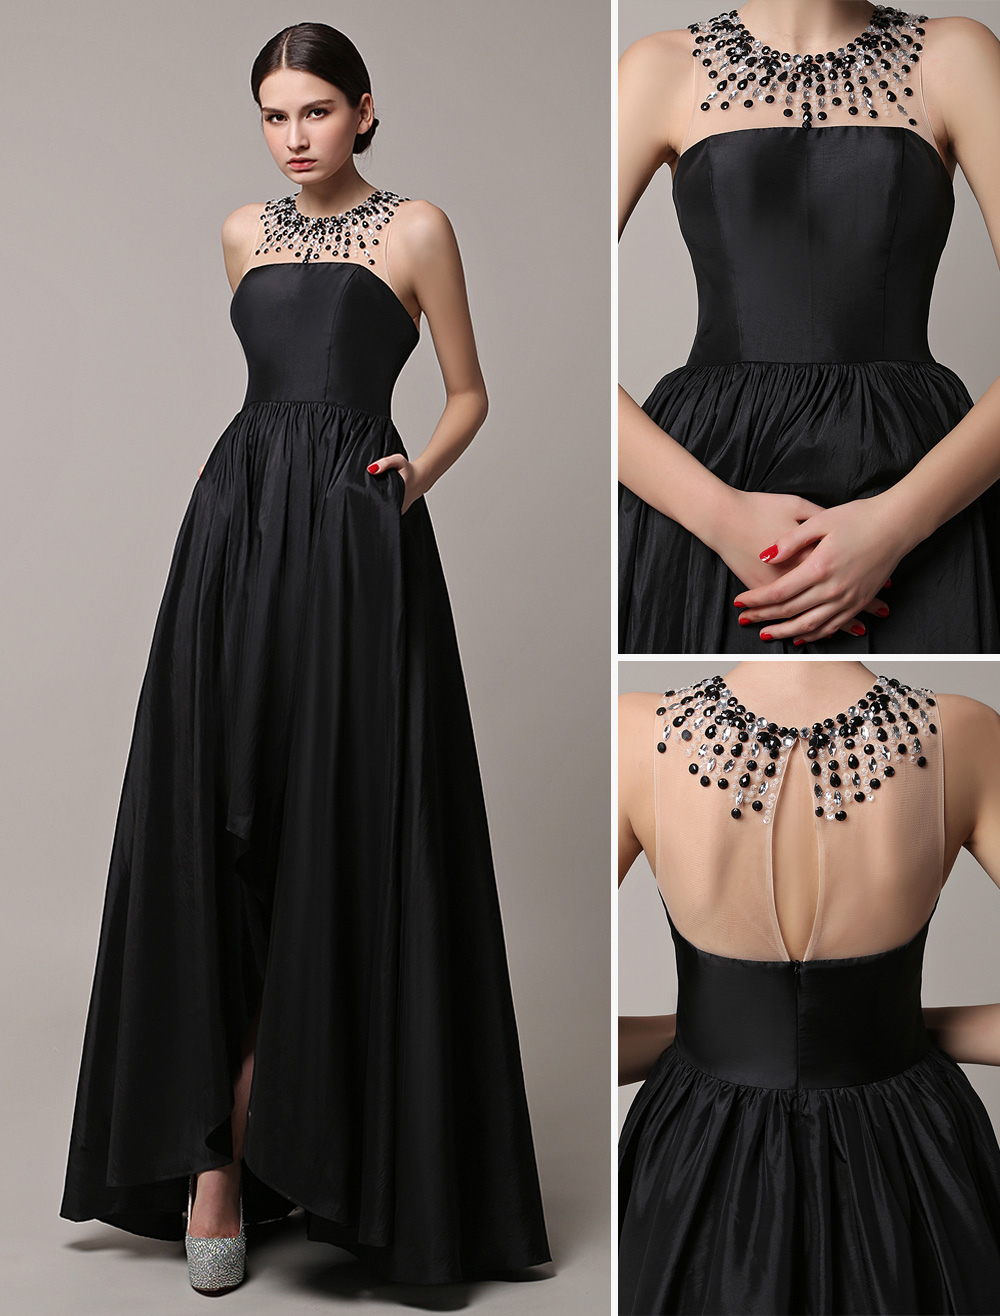 Black Prom Dresses 2018 Long Wedding Dress High Low Beading Illusion Neckline Taffeta Evening Dress Wedding Guest Dress Milanoo